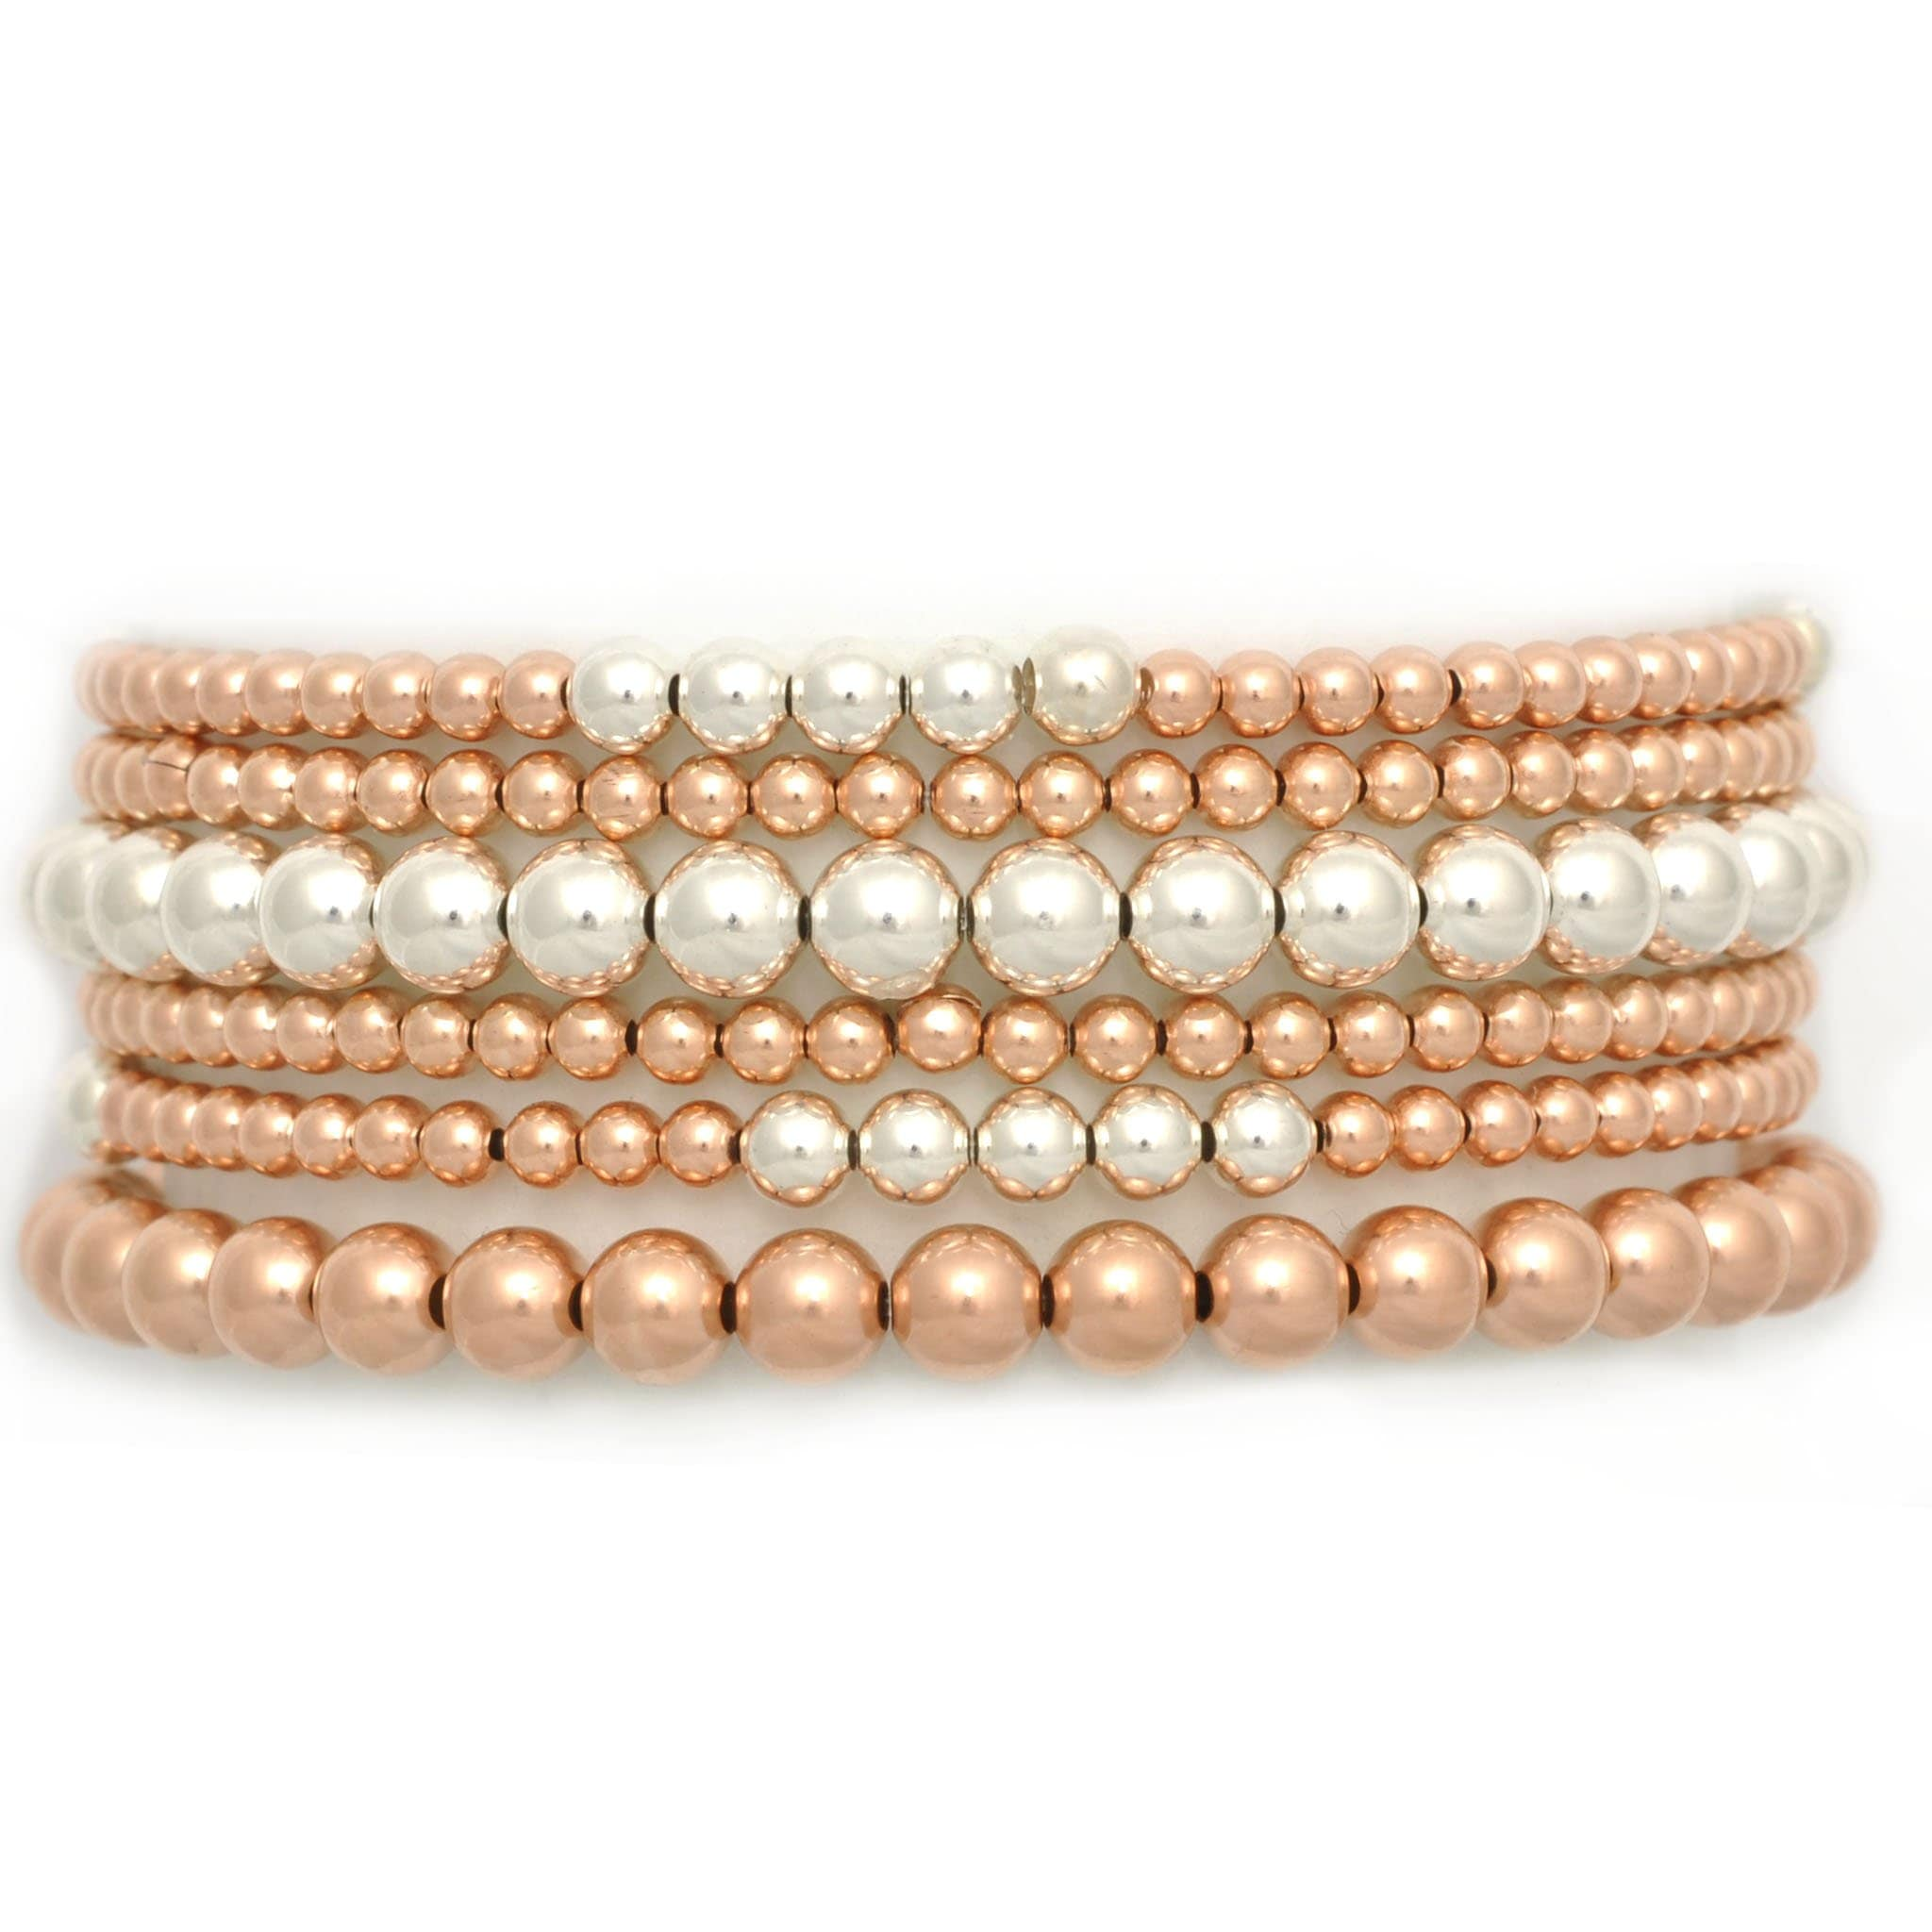 Two Tone Silver and Rose Gold Bead Bracelet - Curated Los Angeles